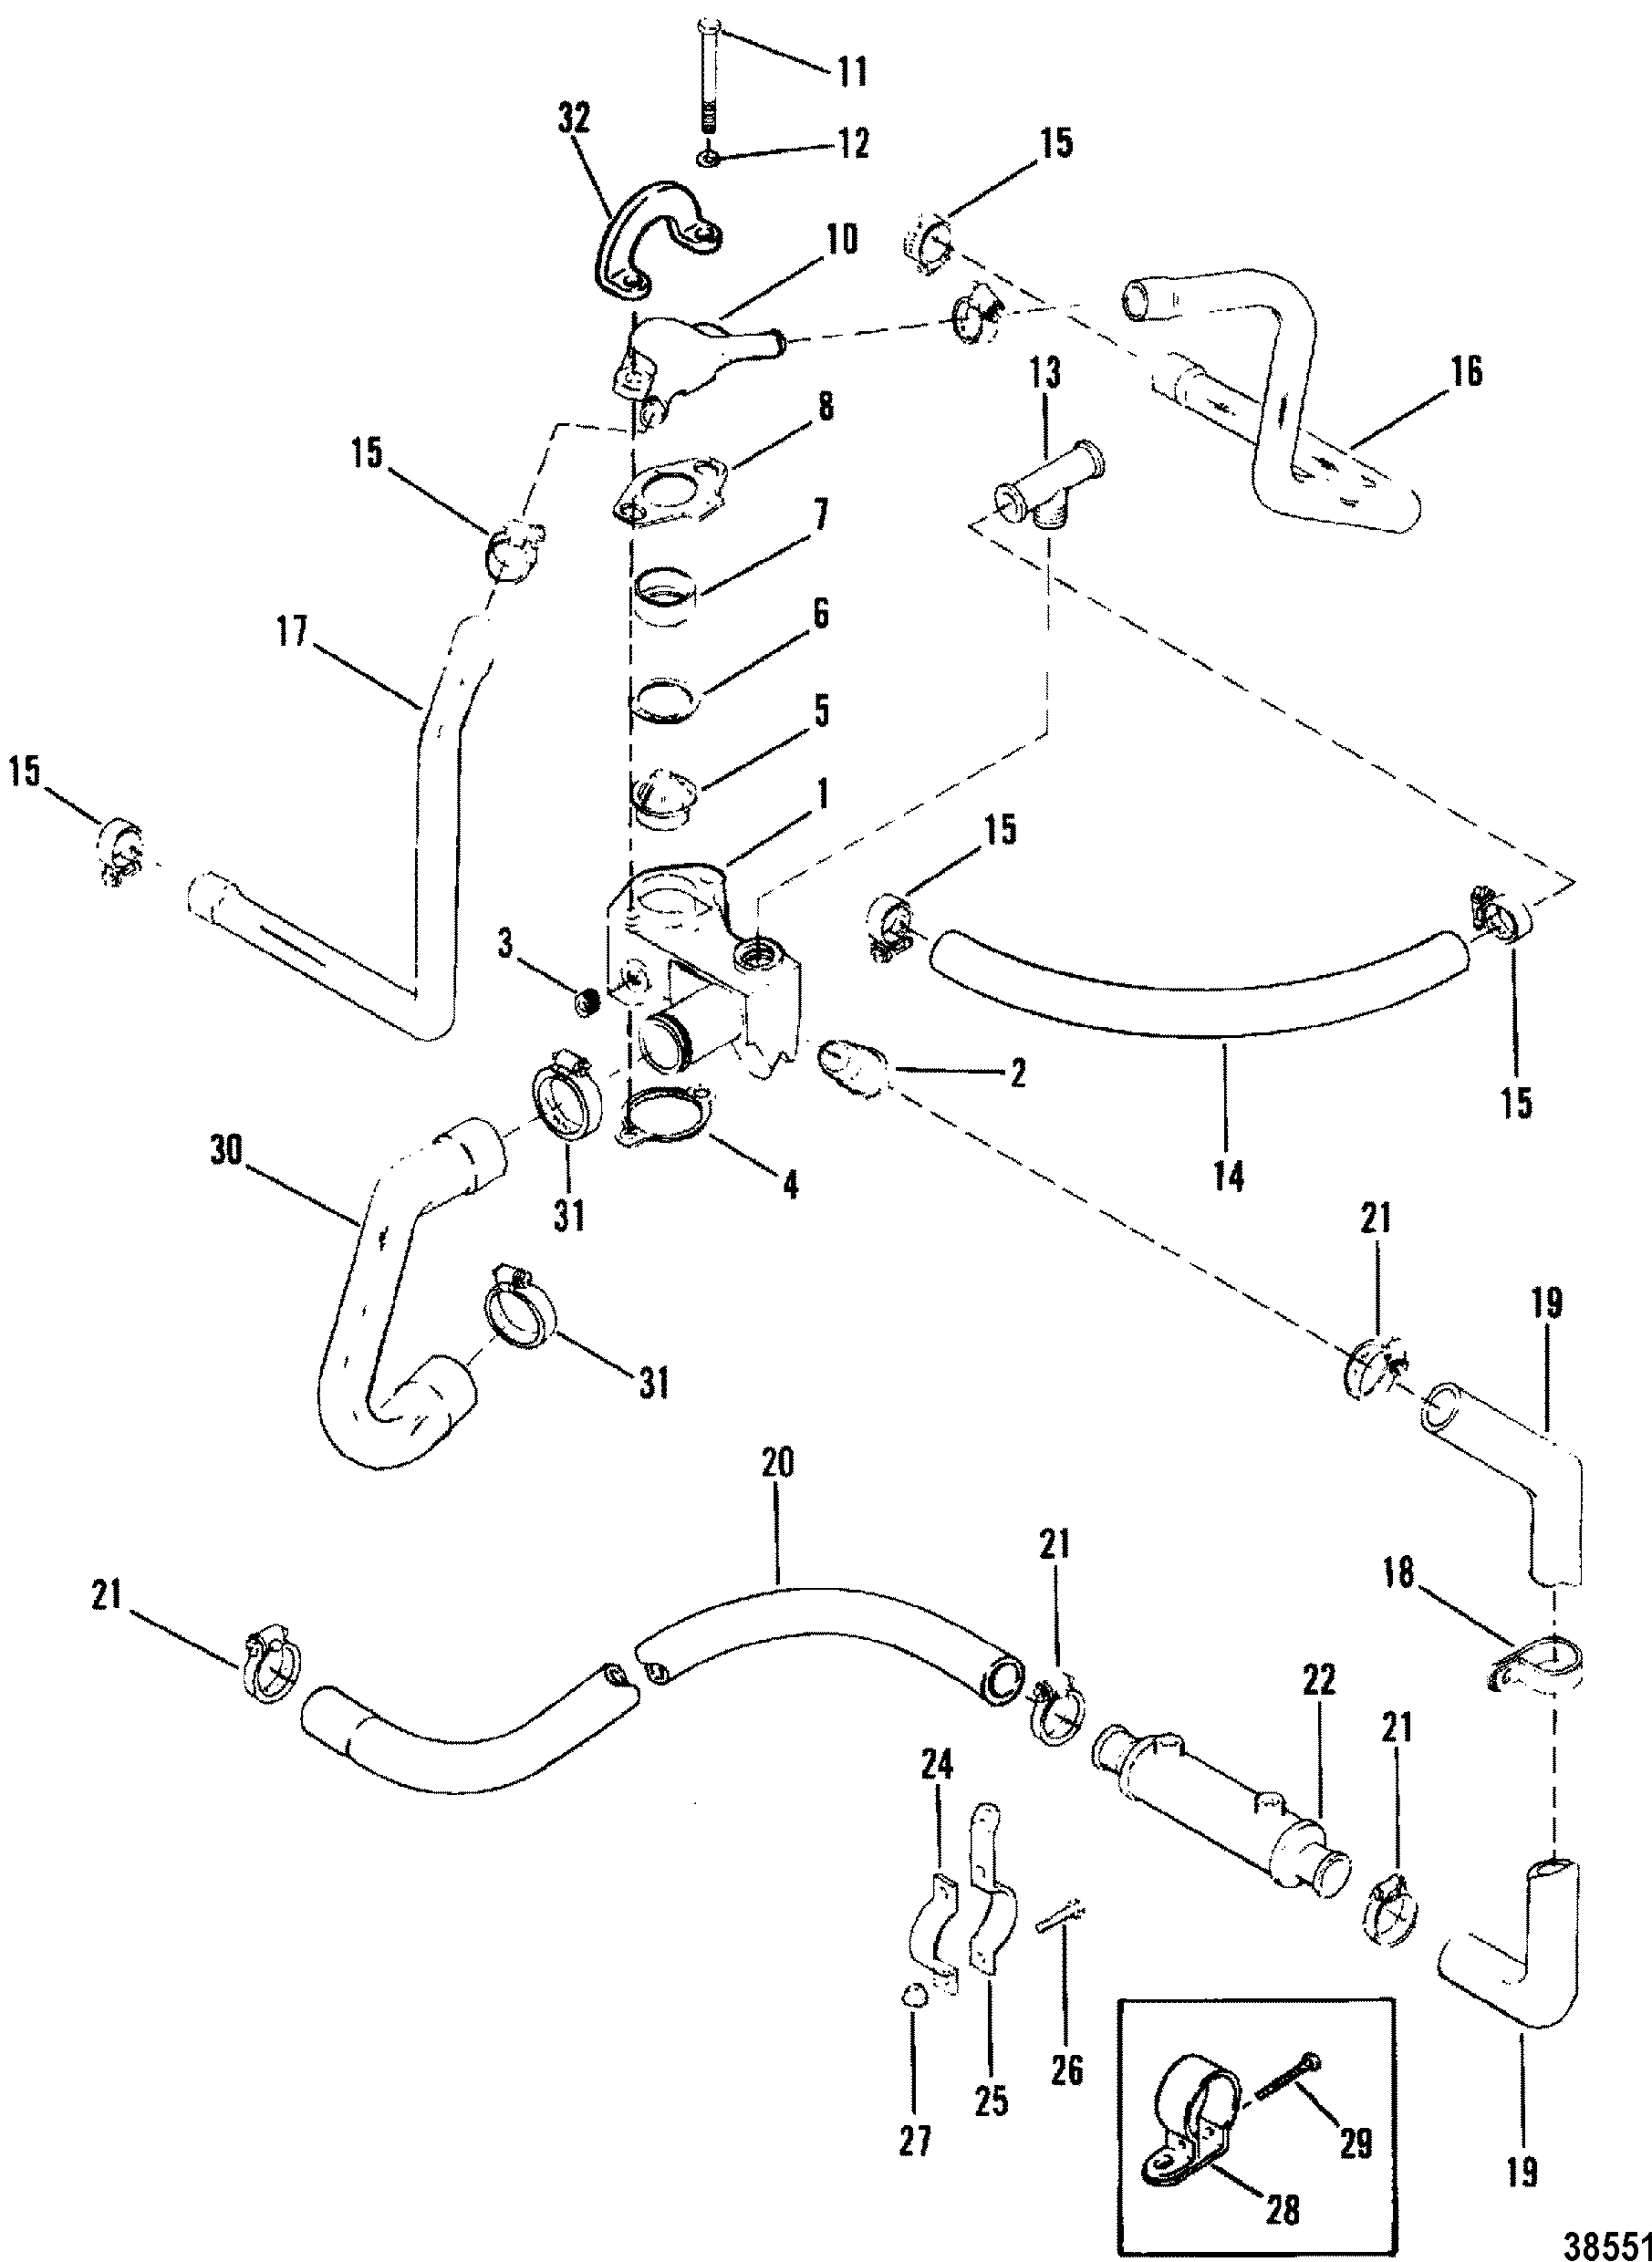 Mercruiser 260 Exhaust Parts Diagram. Diagram. Auto Wiring